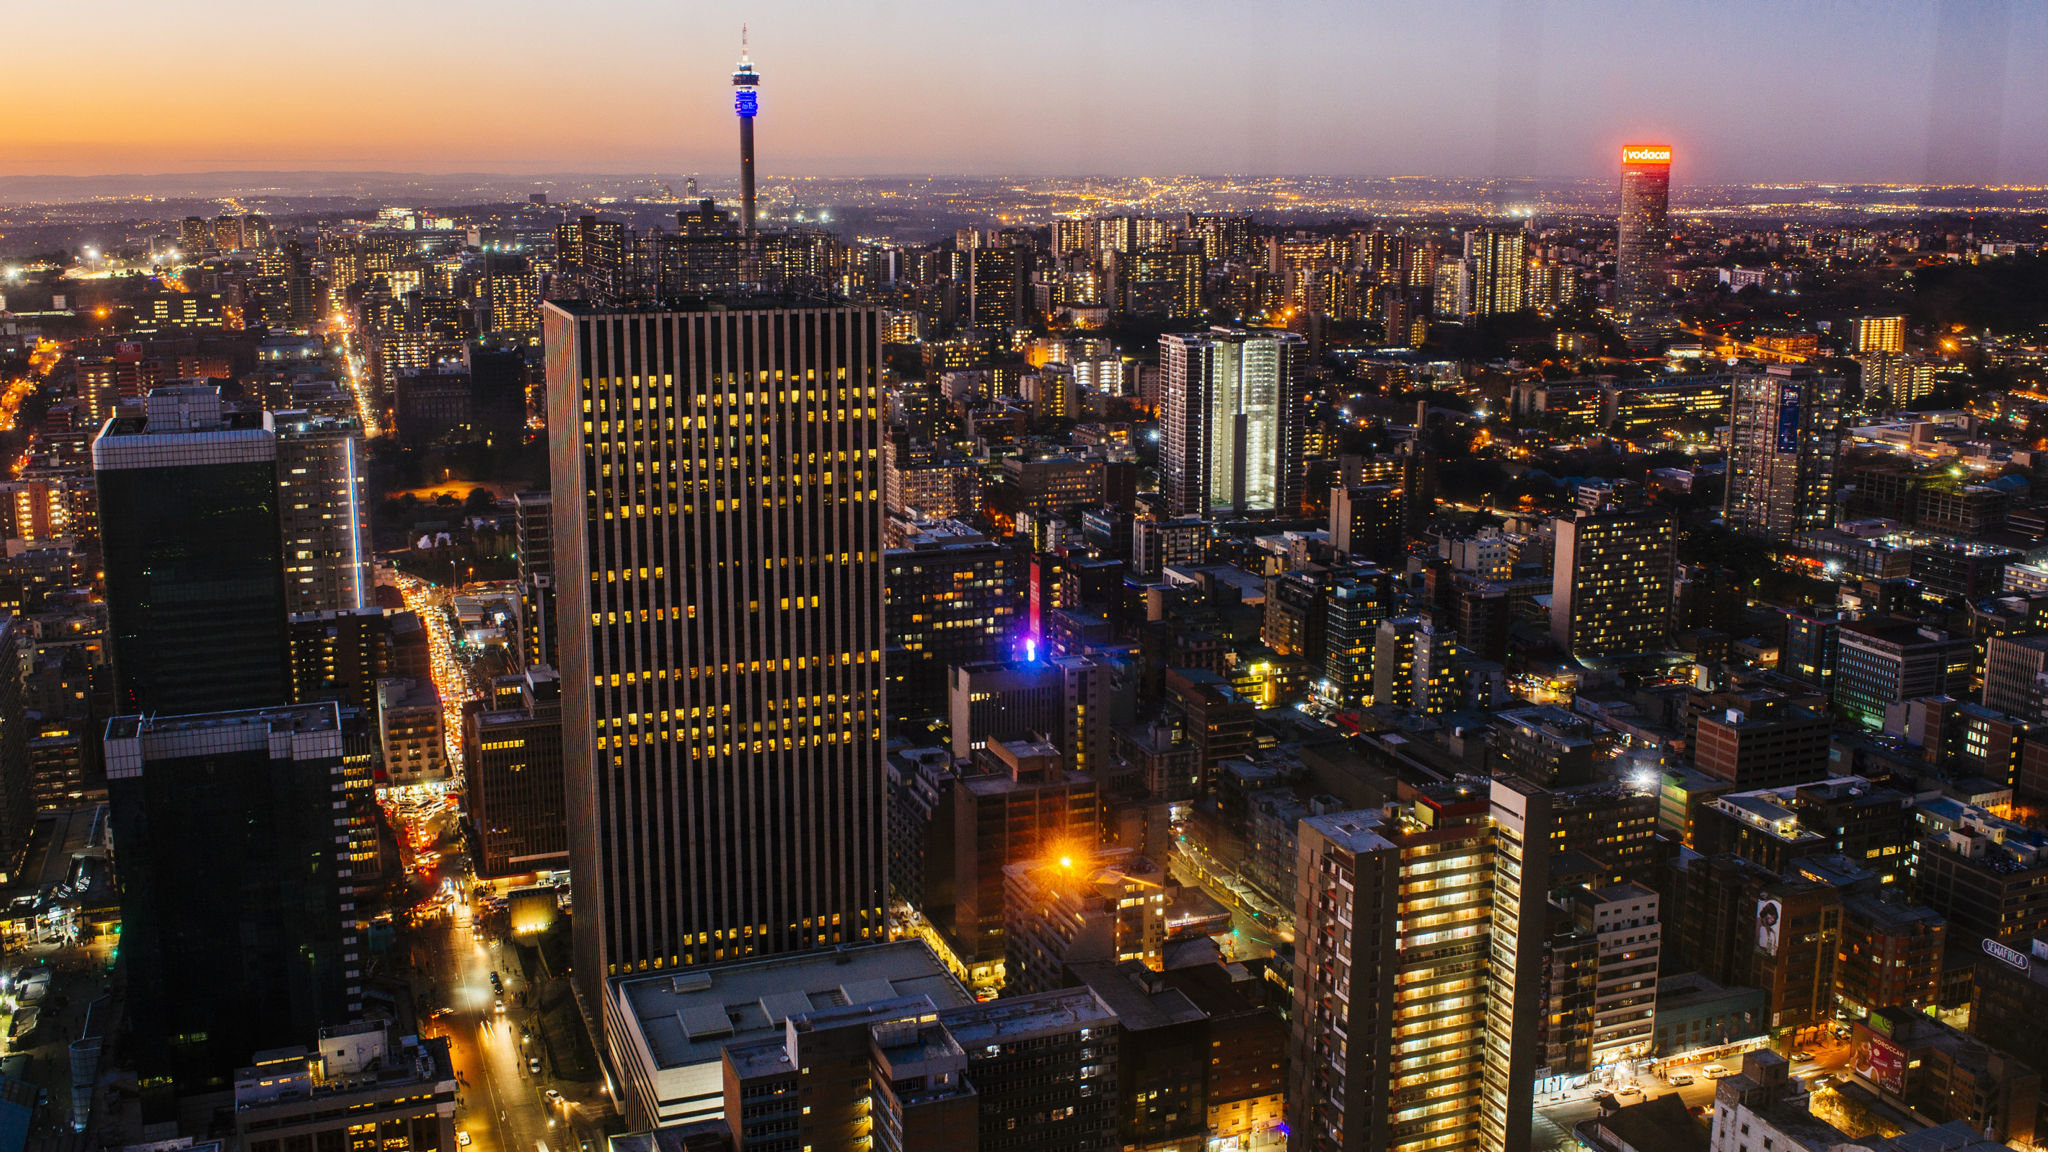 South Africa's economy contracts in third quarter